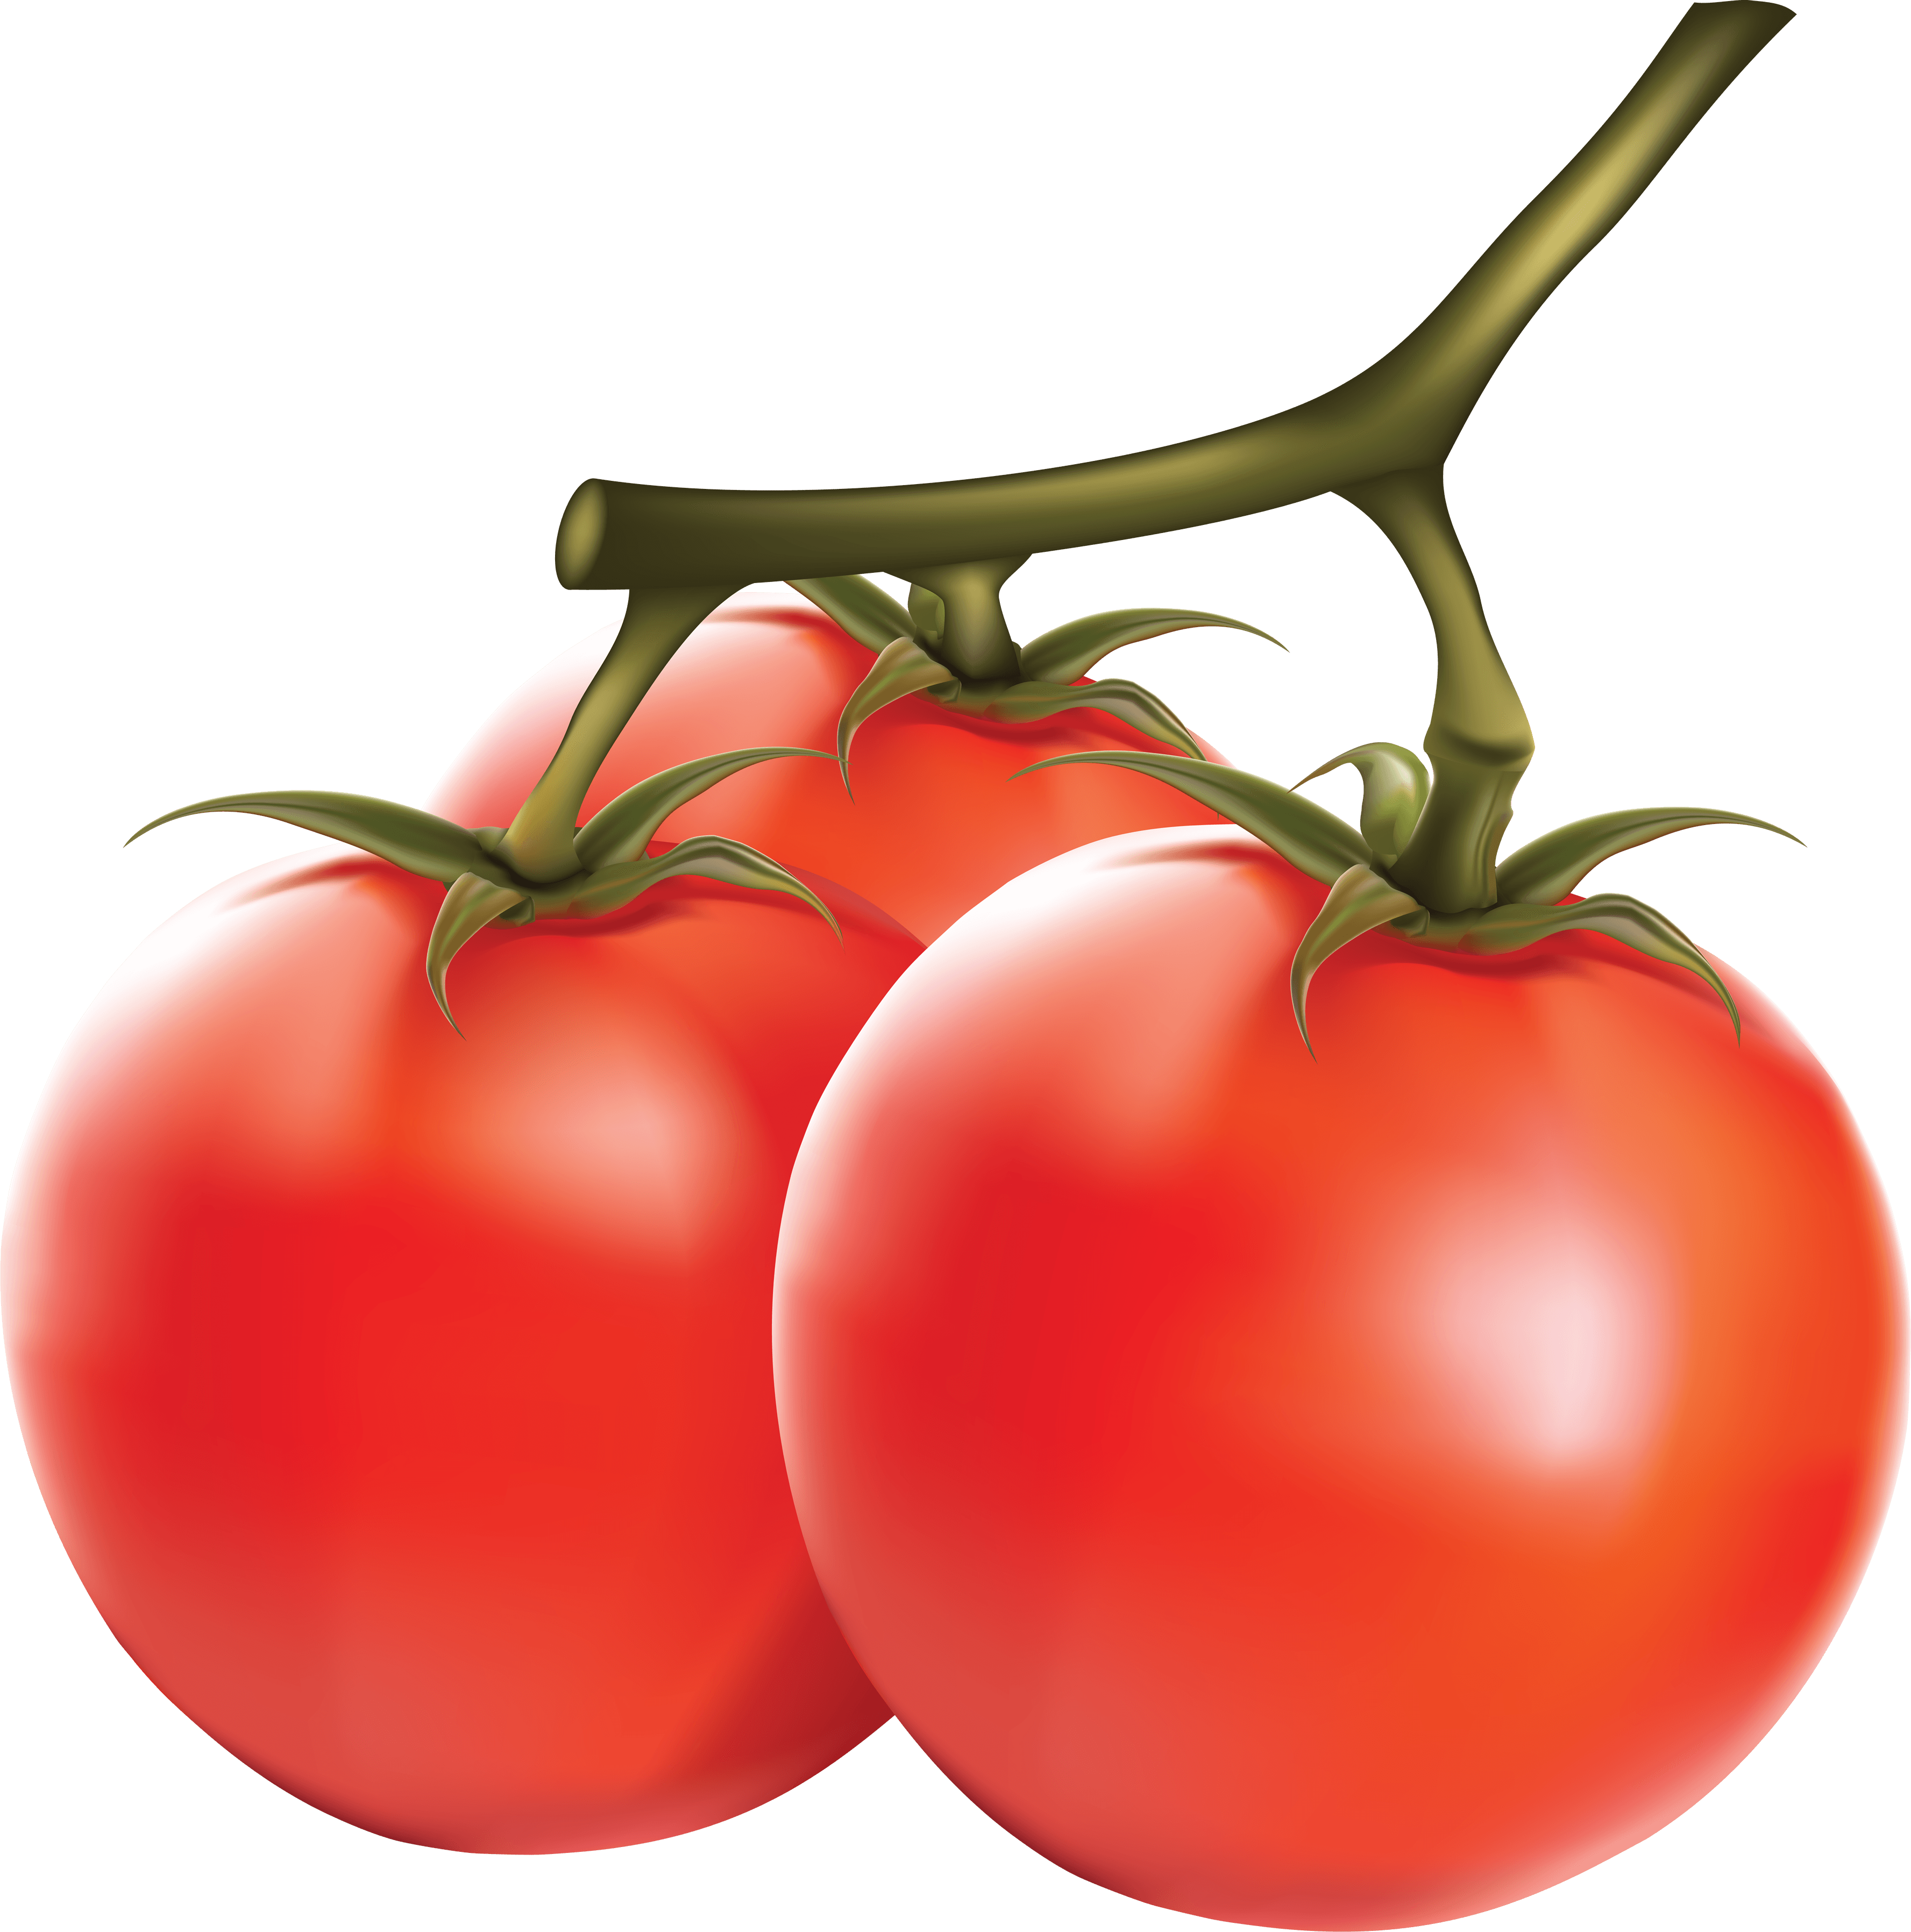 Tomato Png Image PNG Image - Tomato PNG HD